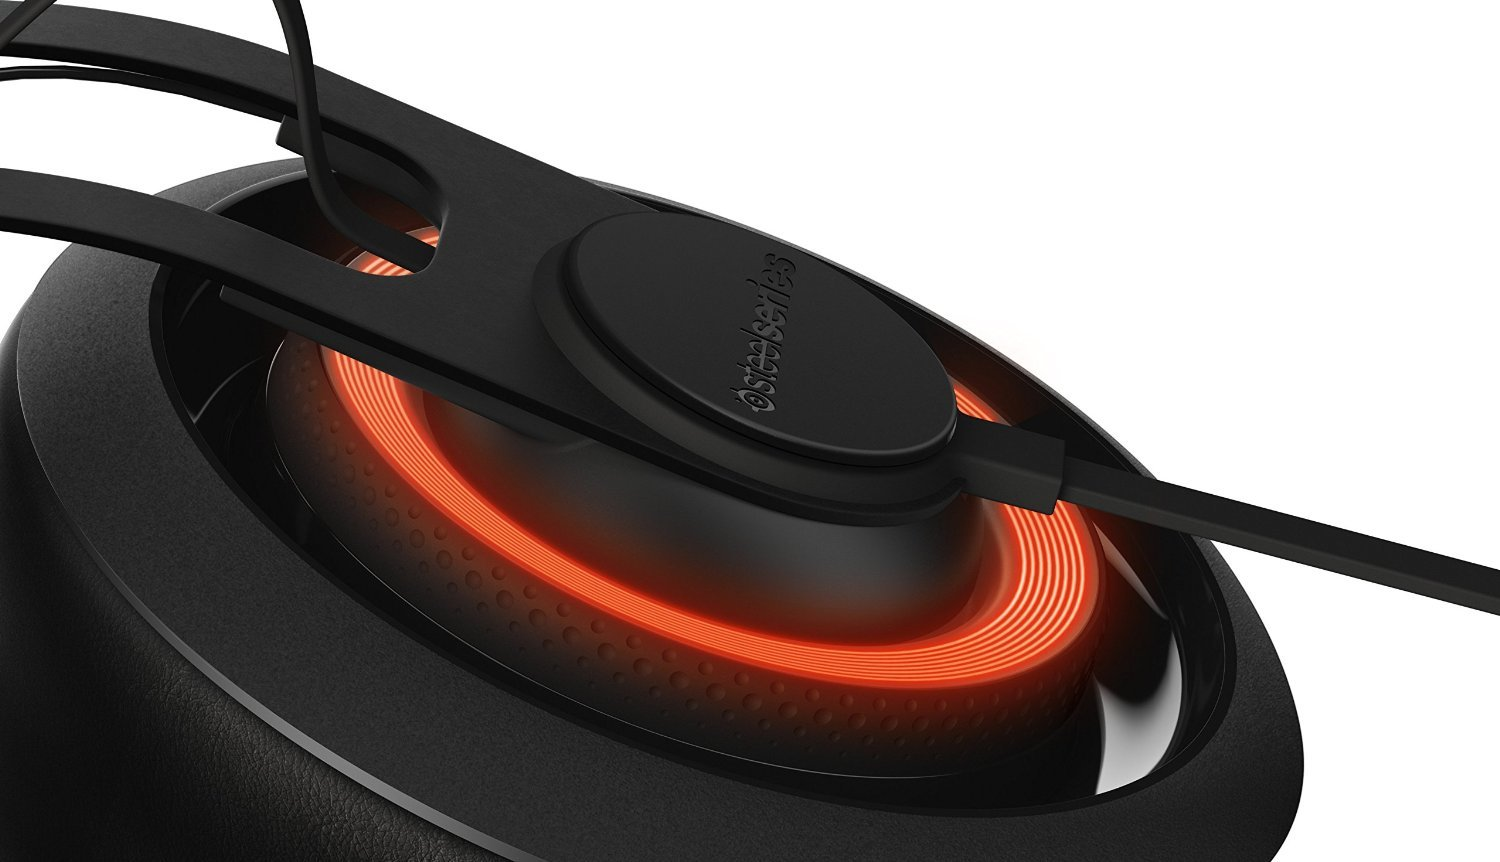 Steelseries Siberia 650 Gaming Headset - Black for PC Games image